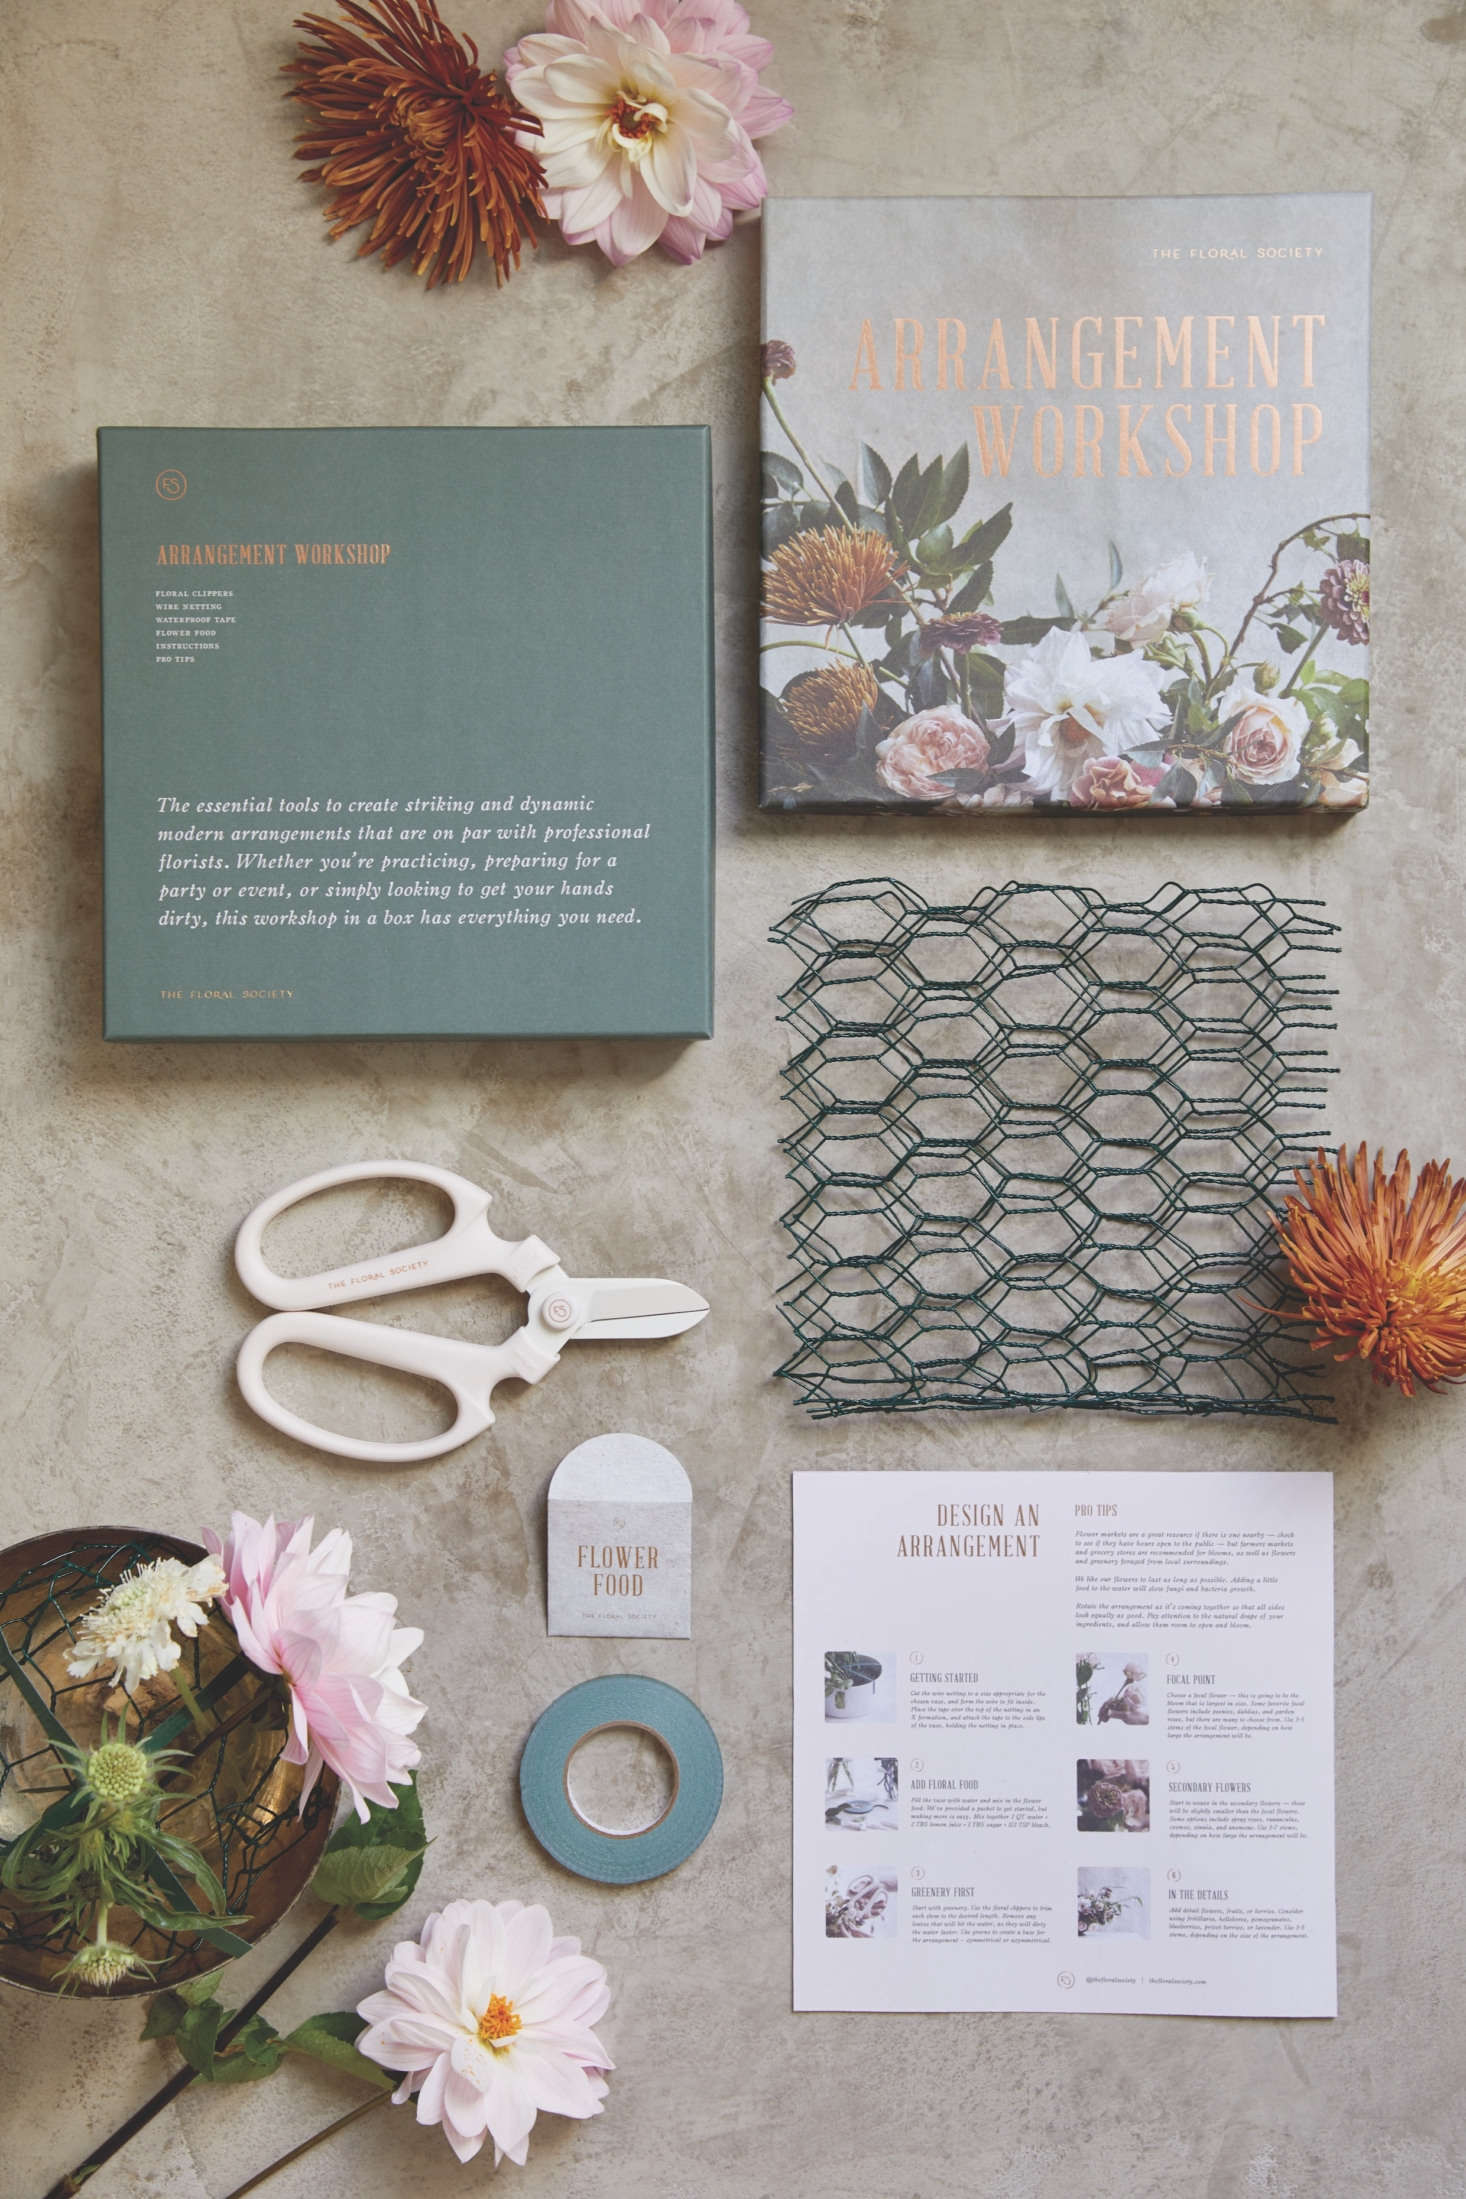 Containing clippers, wire netting, waterproof tape, and instructions, the Arrangement Workshop, $86, gives starting floral designers the essentials. Companion online videos offer guidance in making &#8